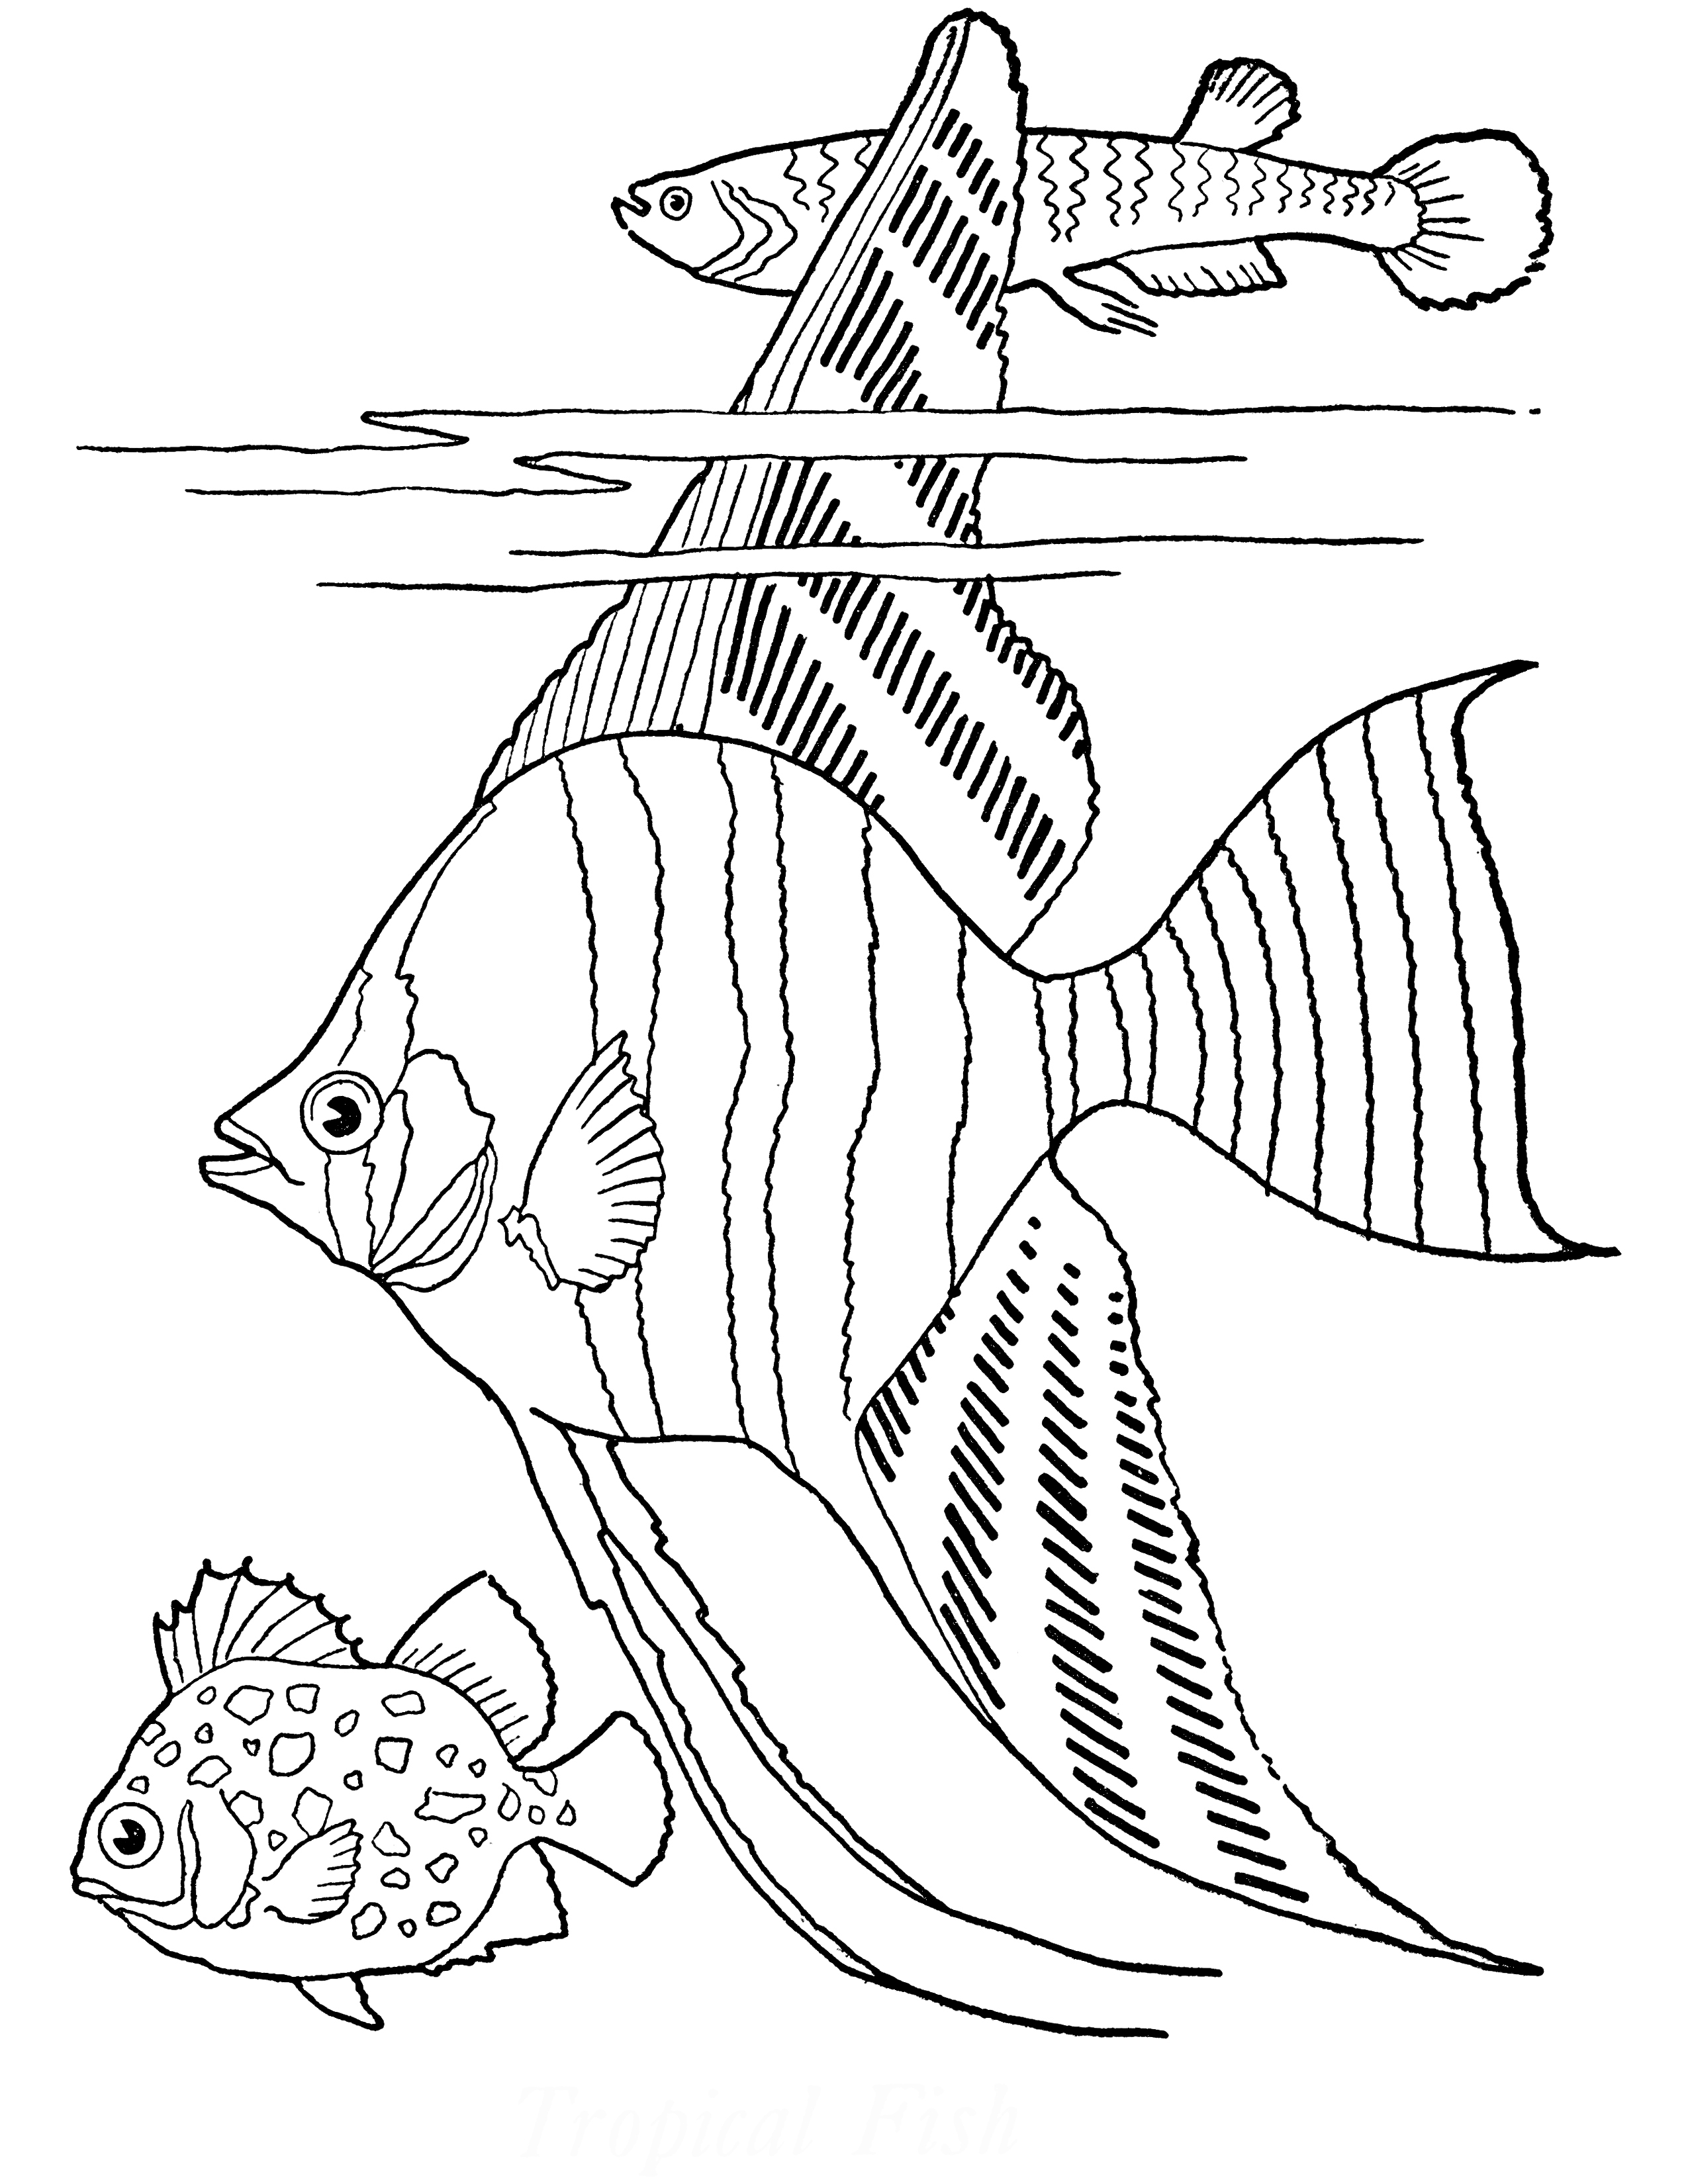 tropical pictures to color tropical rainforest animals coloring pages at getcolorings to tropical color pictures